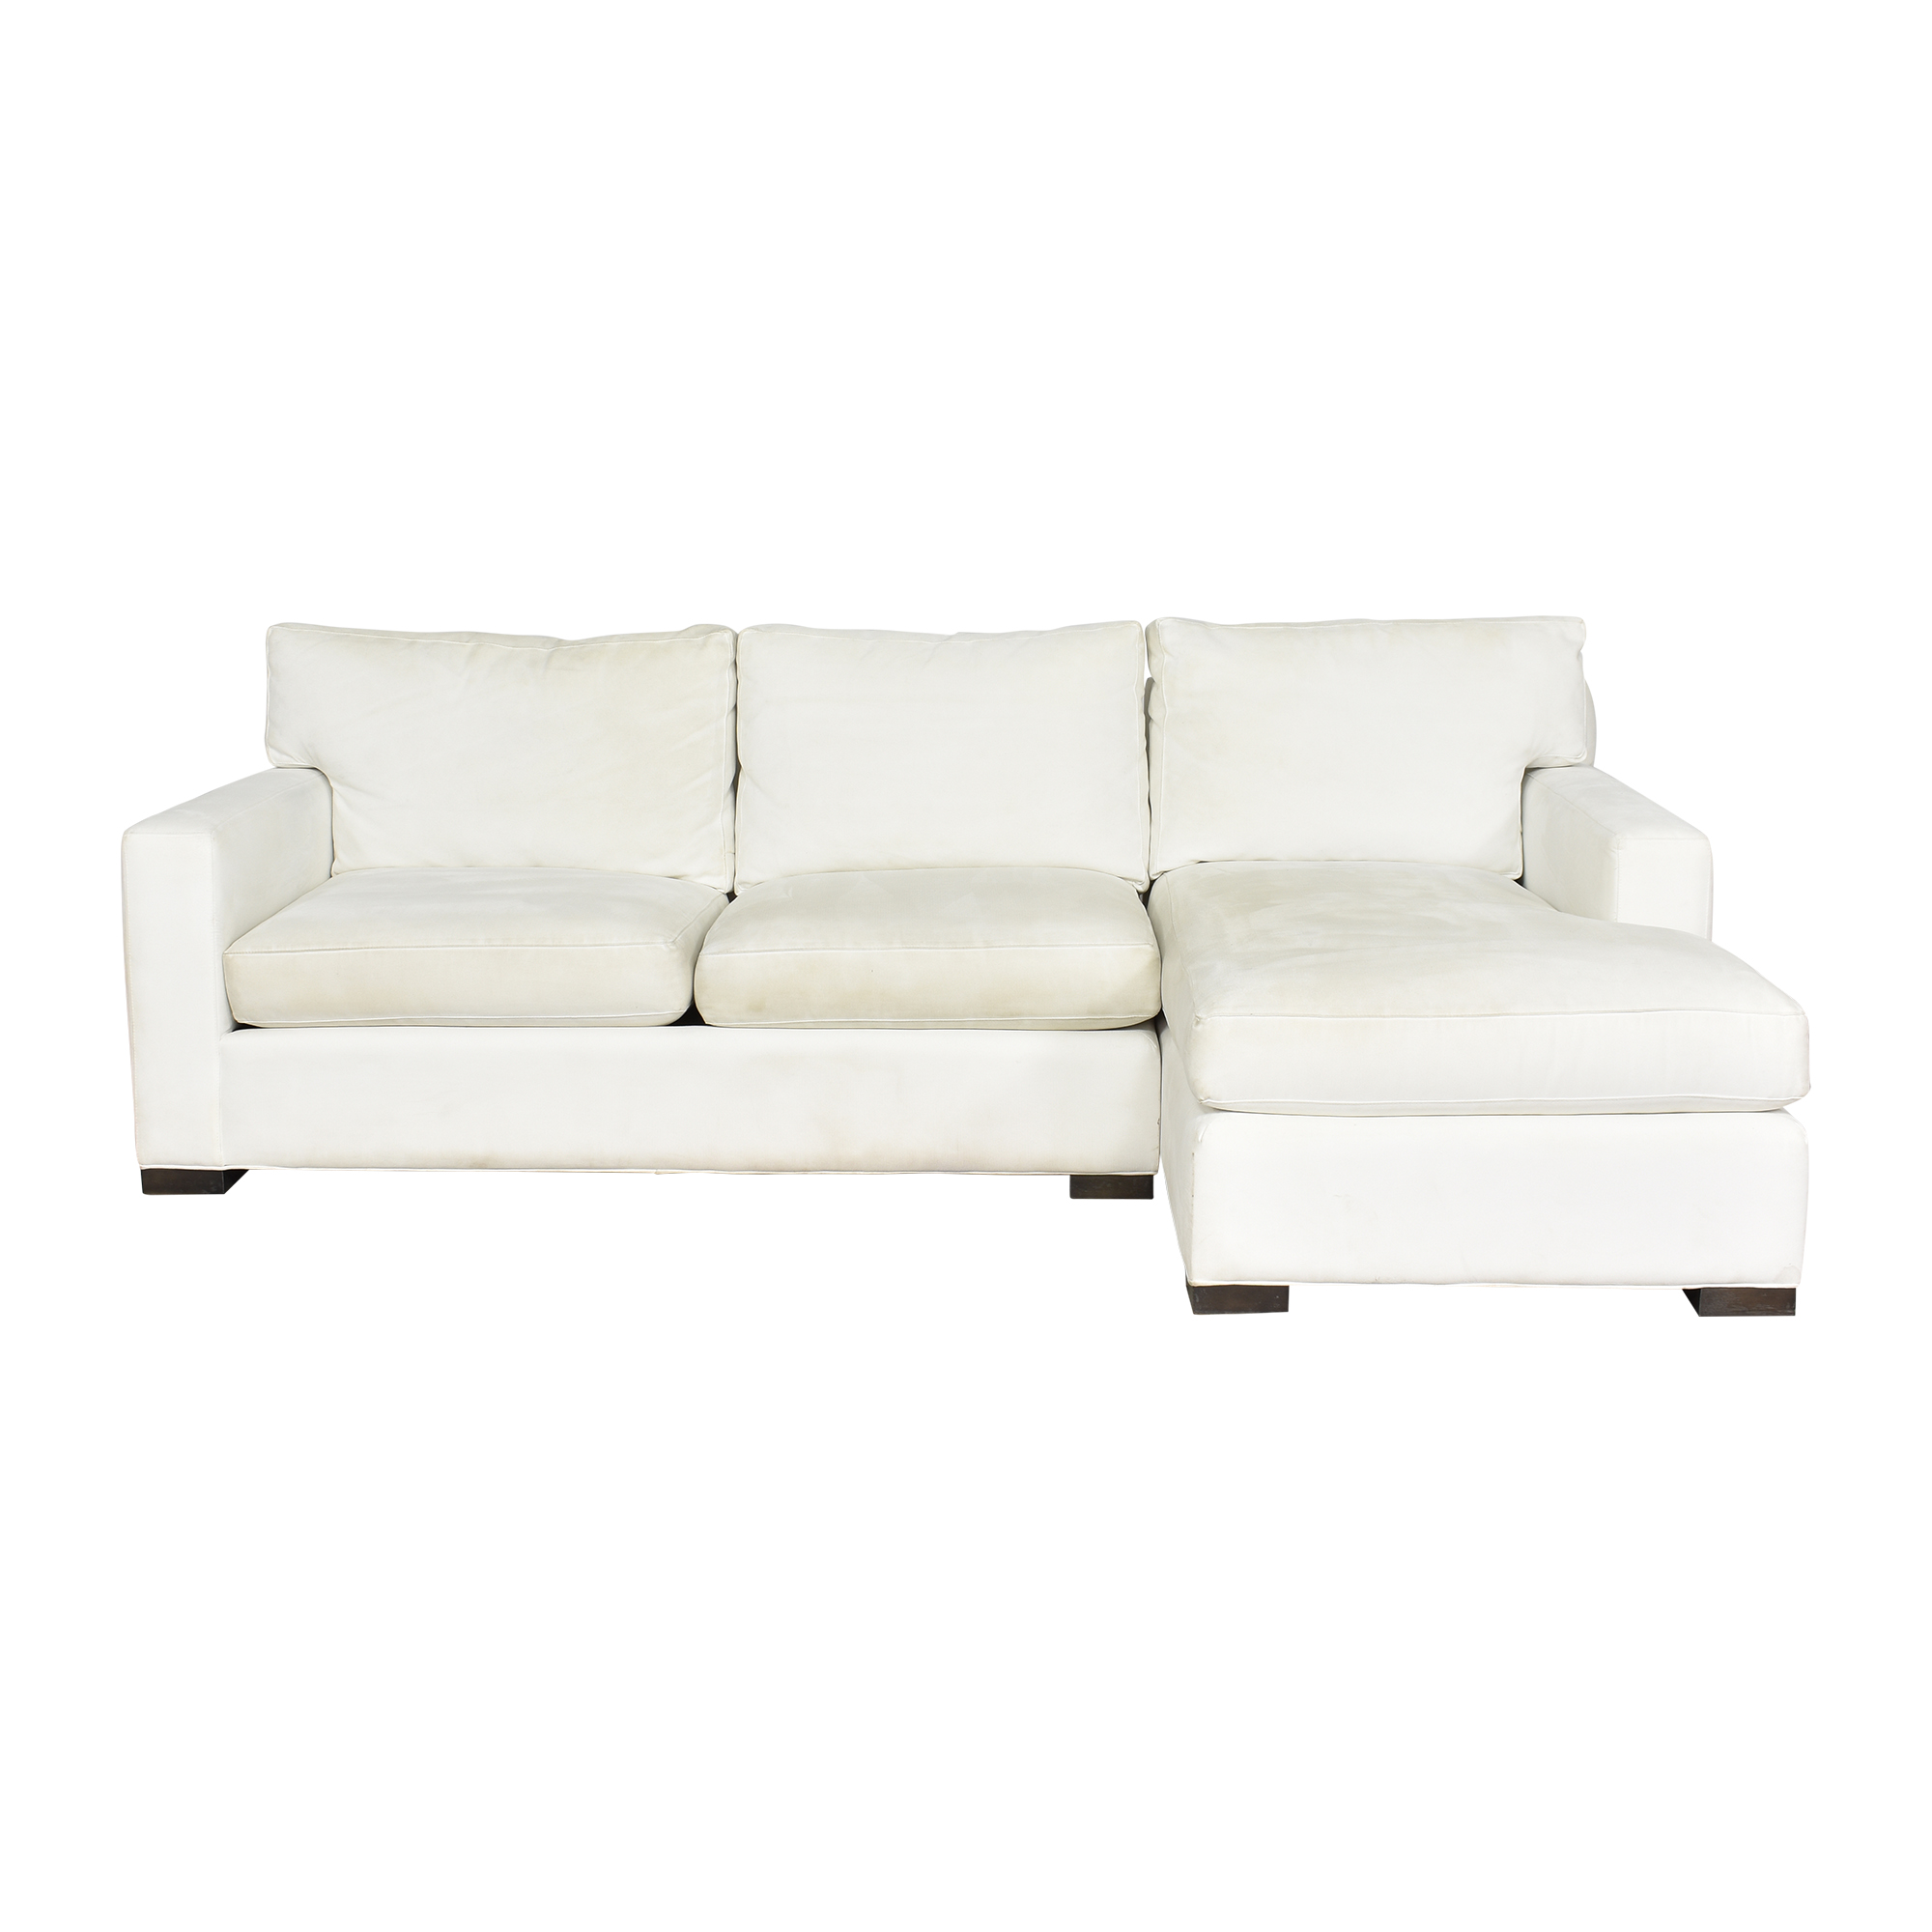 Crate & Barrel Crate & Barrel Axis II Chaise Sectional Sofa pa